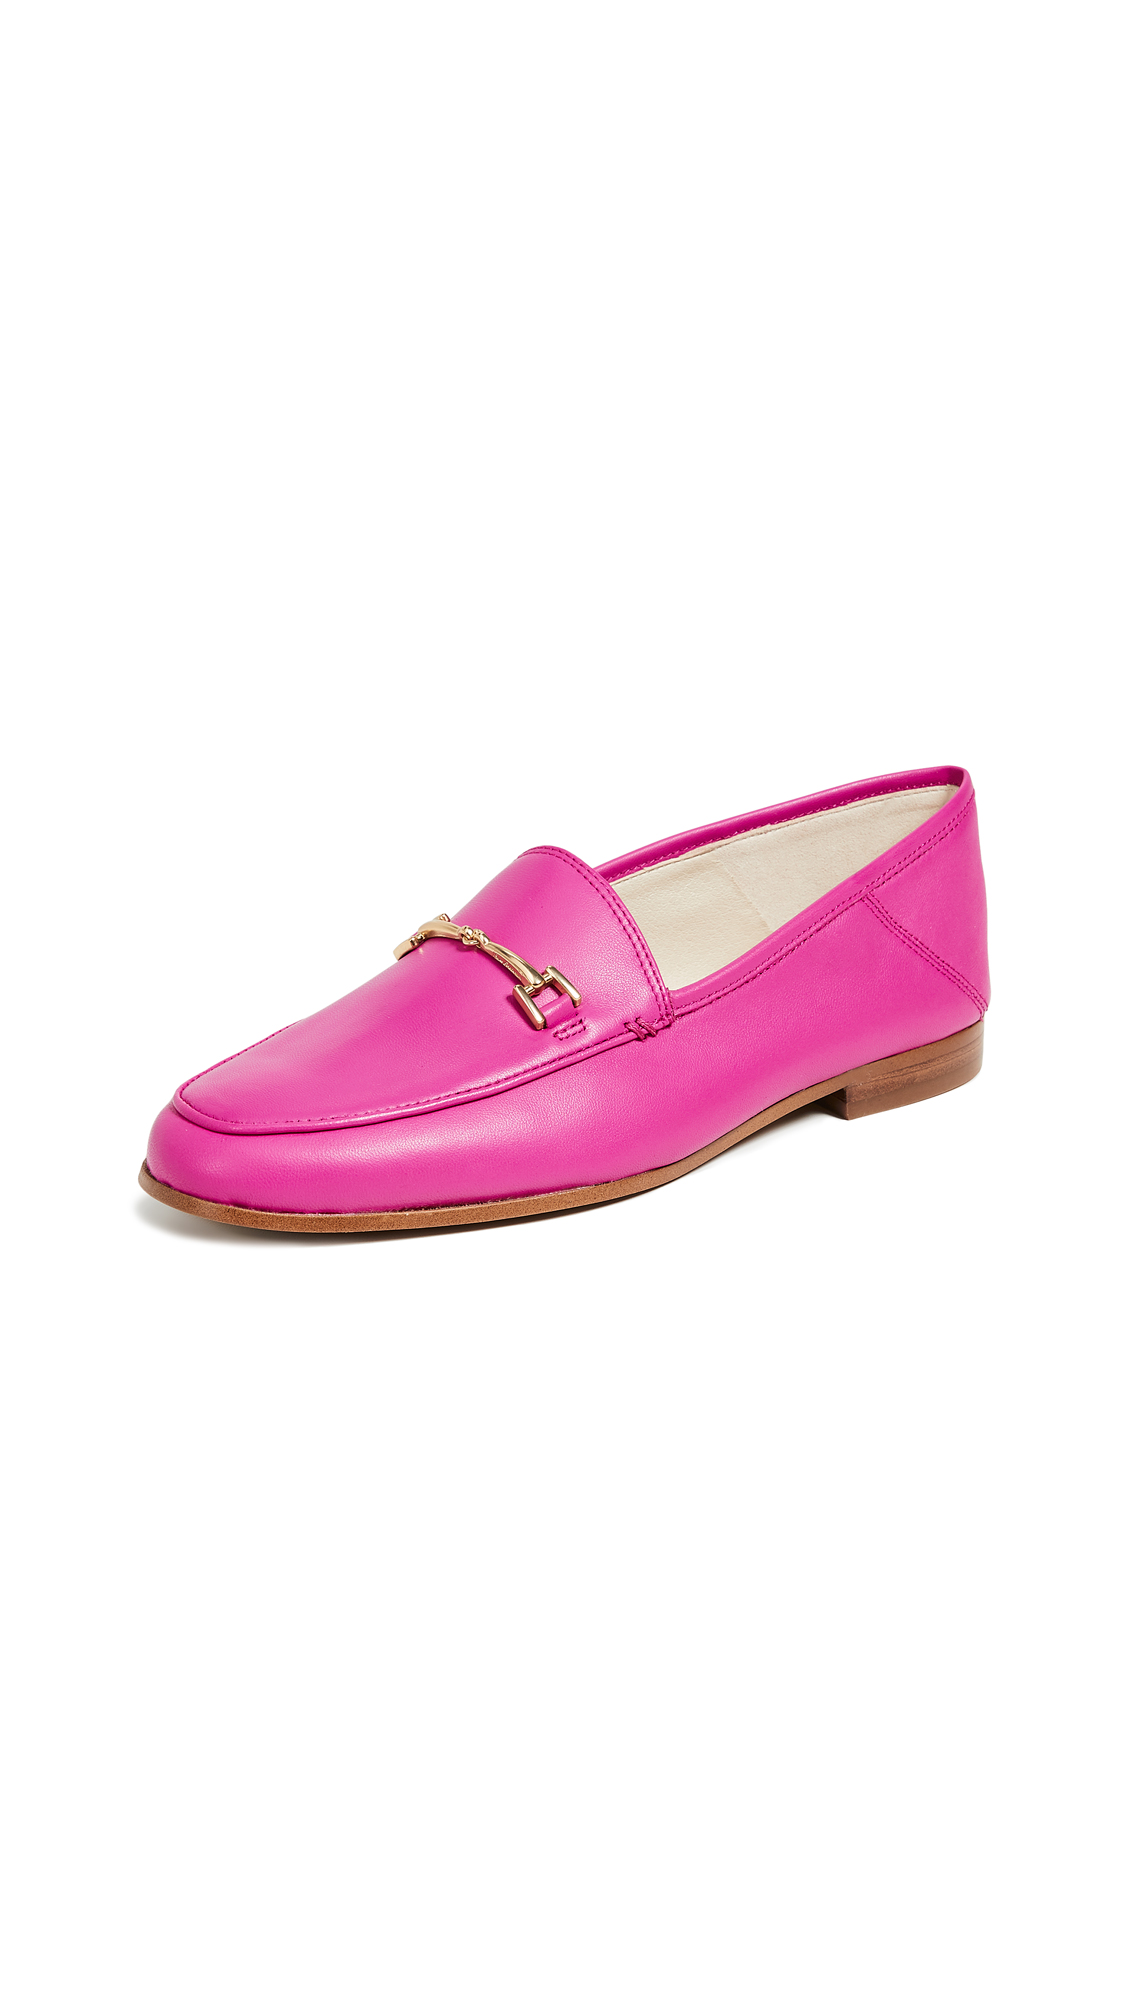 Loraine Leather Loafers in Retro Pink